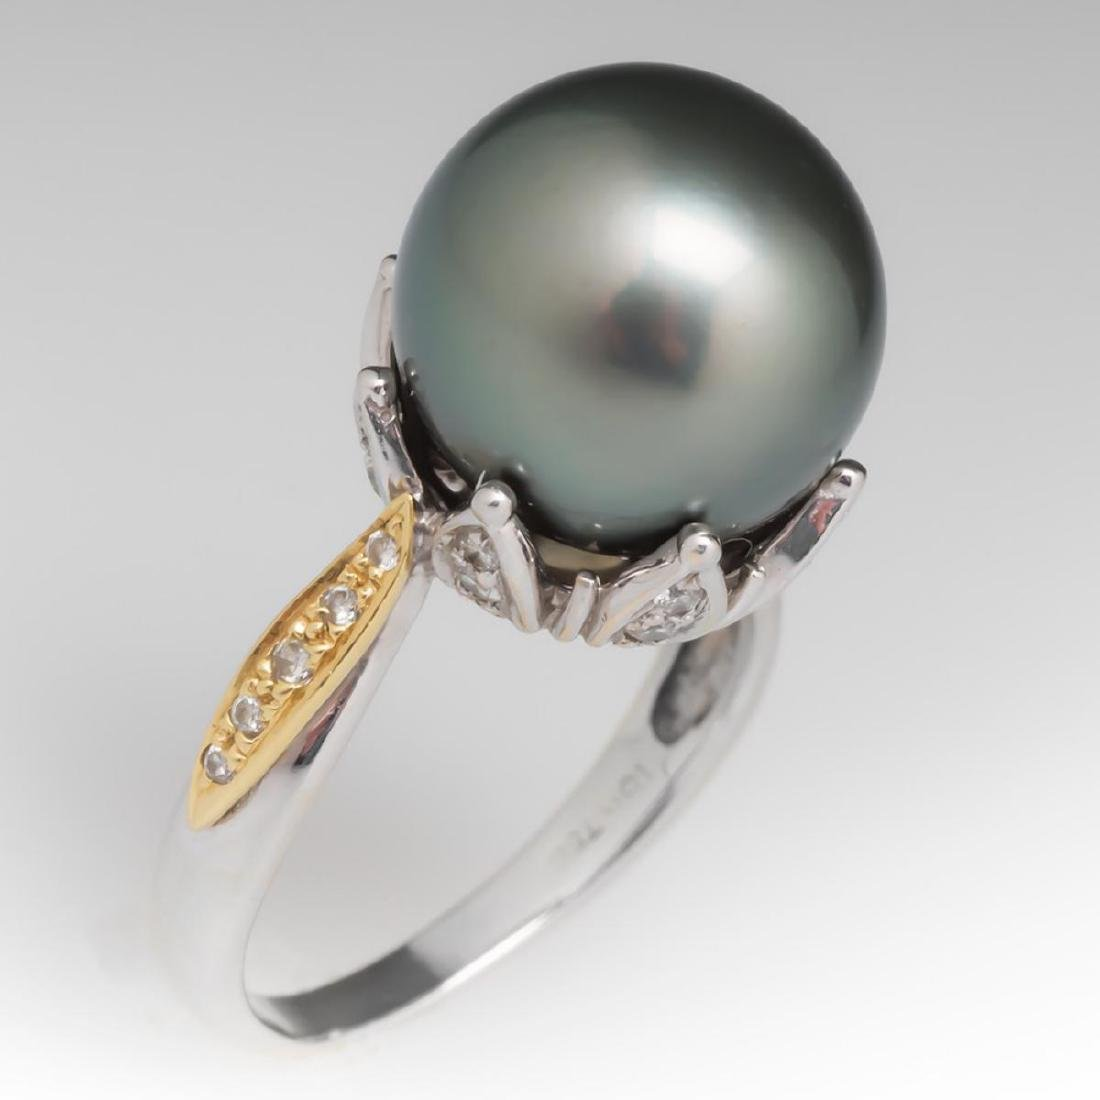 18K Gold Black Tahitian Pearl Ring w. Diamonds - 2